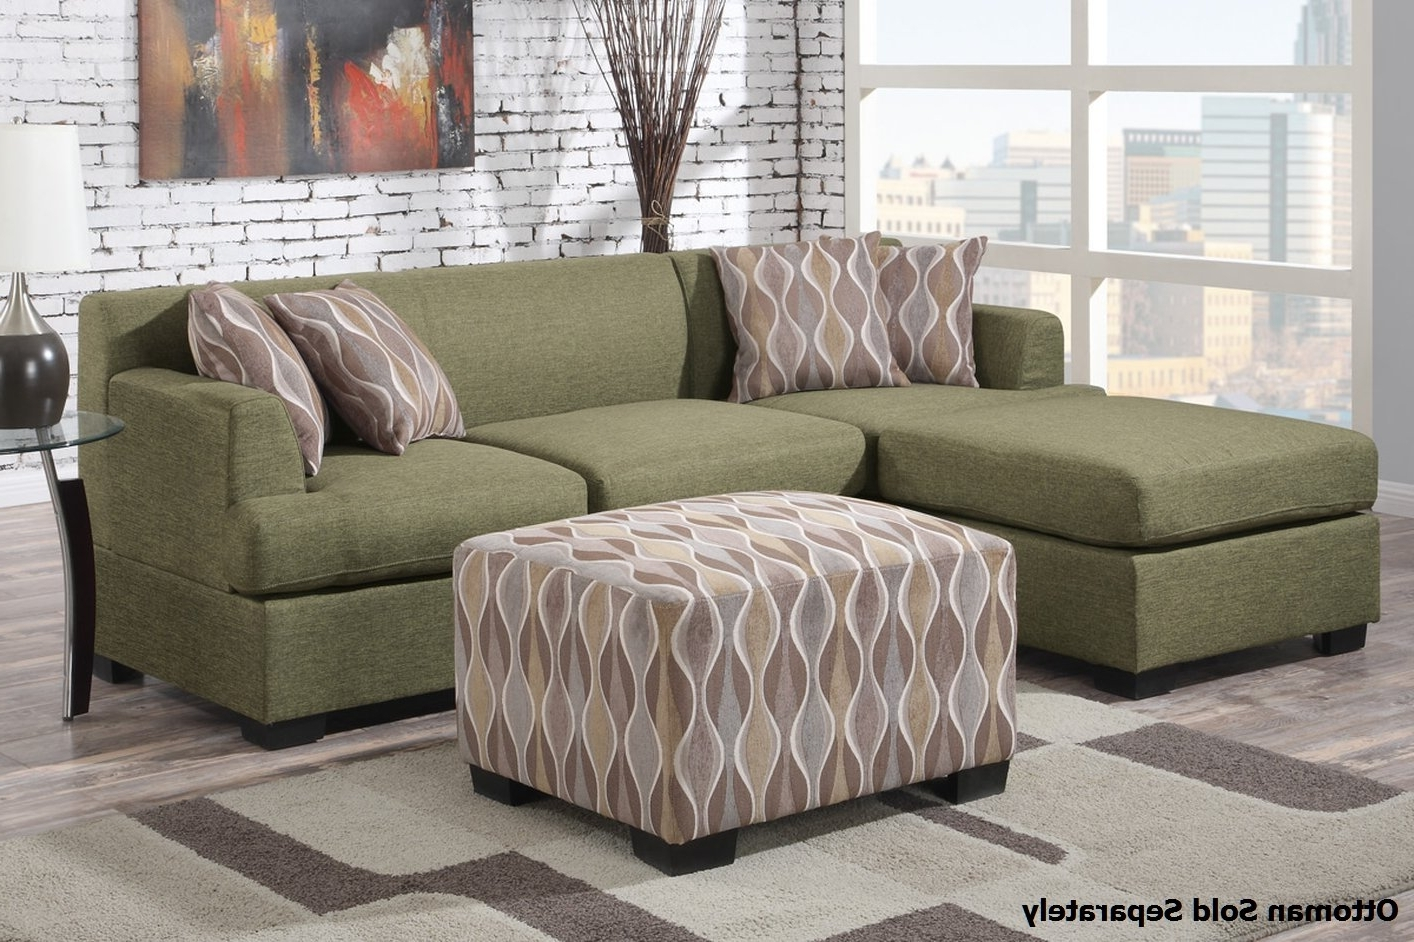 Montreal Ii Green Fabric Sectional Sofa – Steal A Sofa Furniture With Regard To Recent Green Sectional Sofas (View 10 of 20)